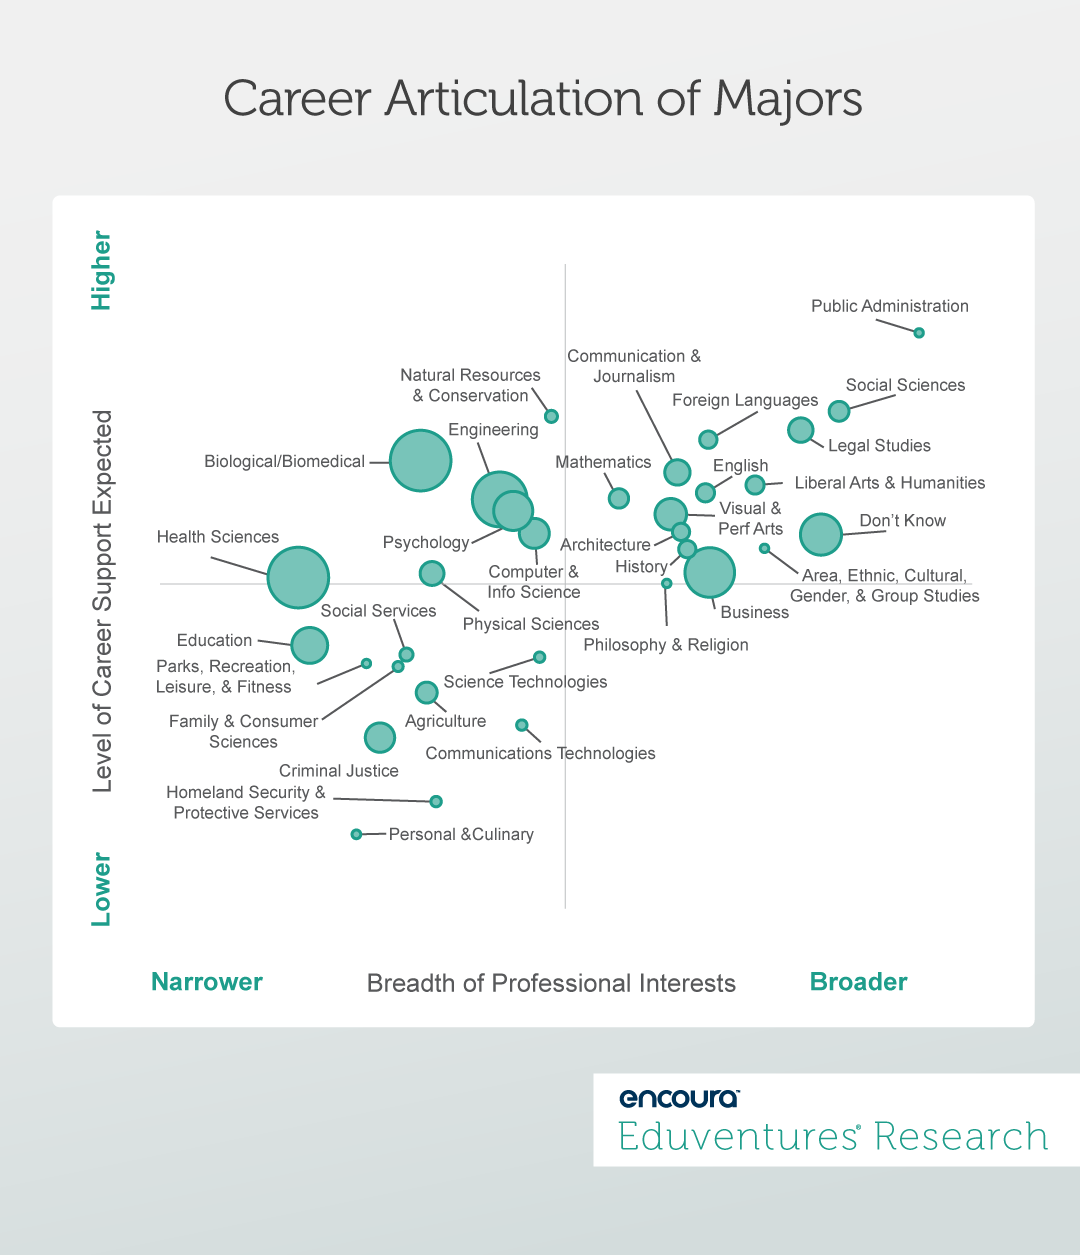 Career Articulation of Majors